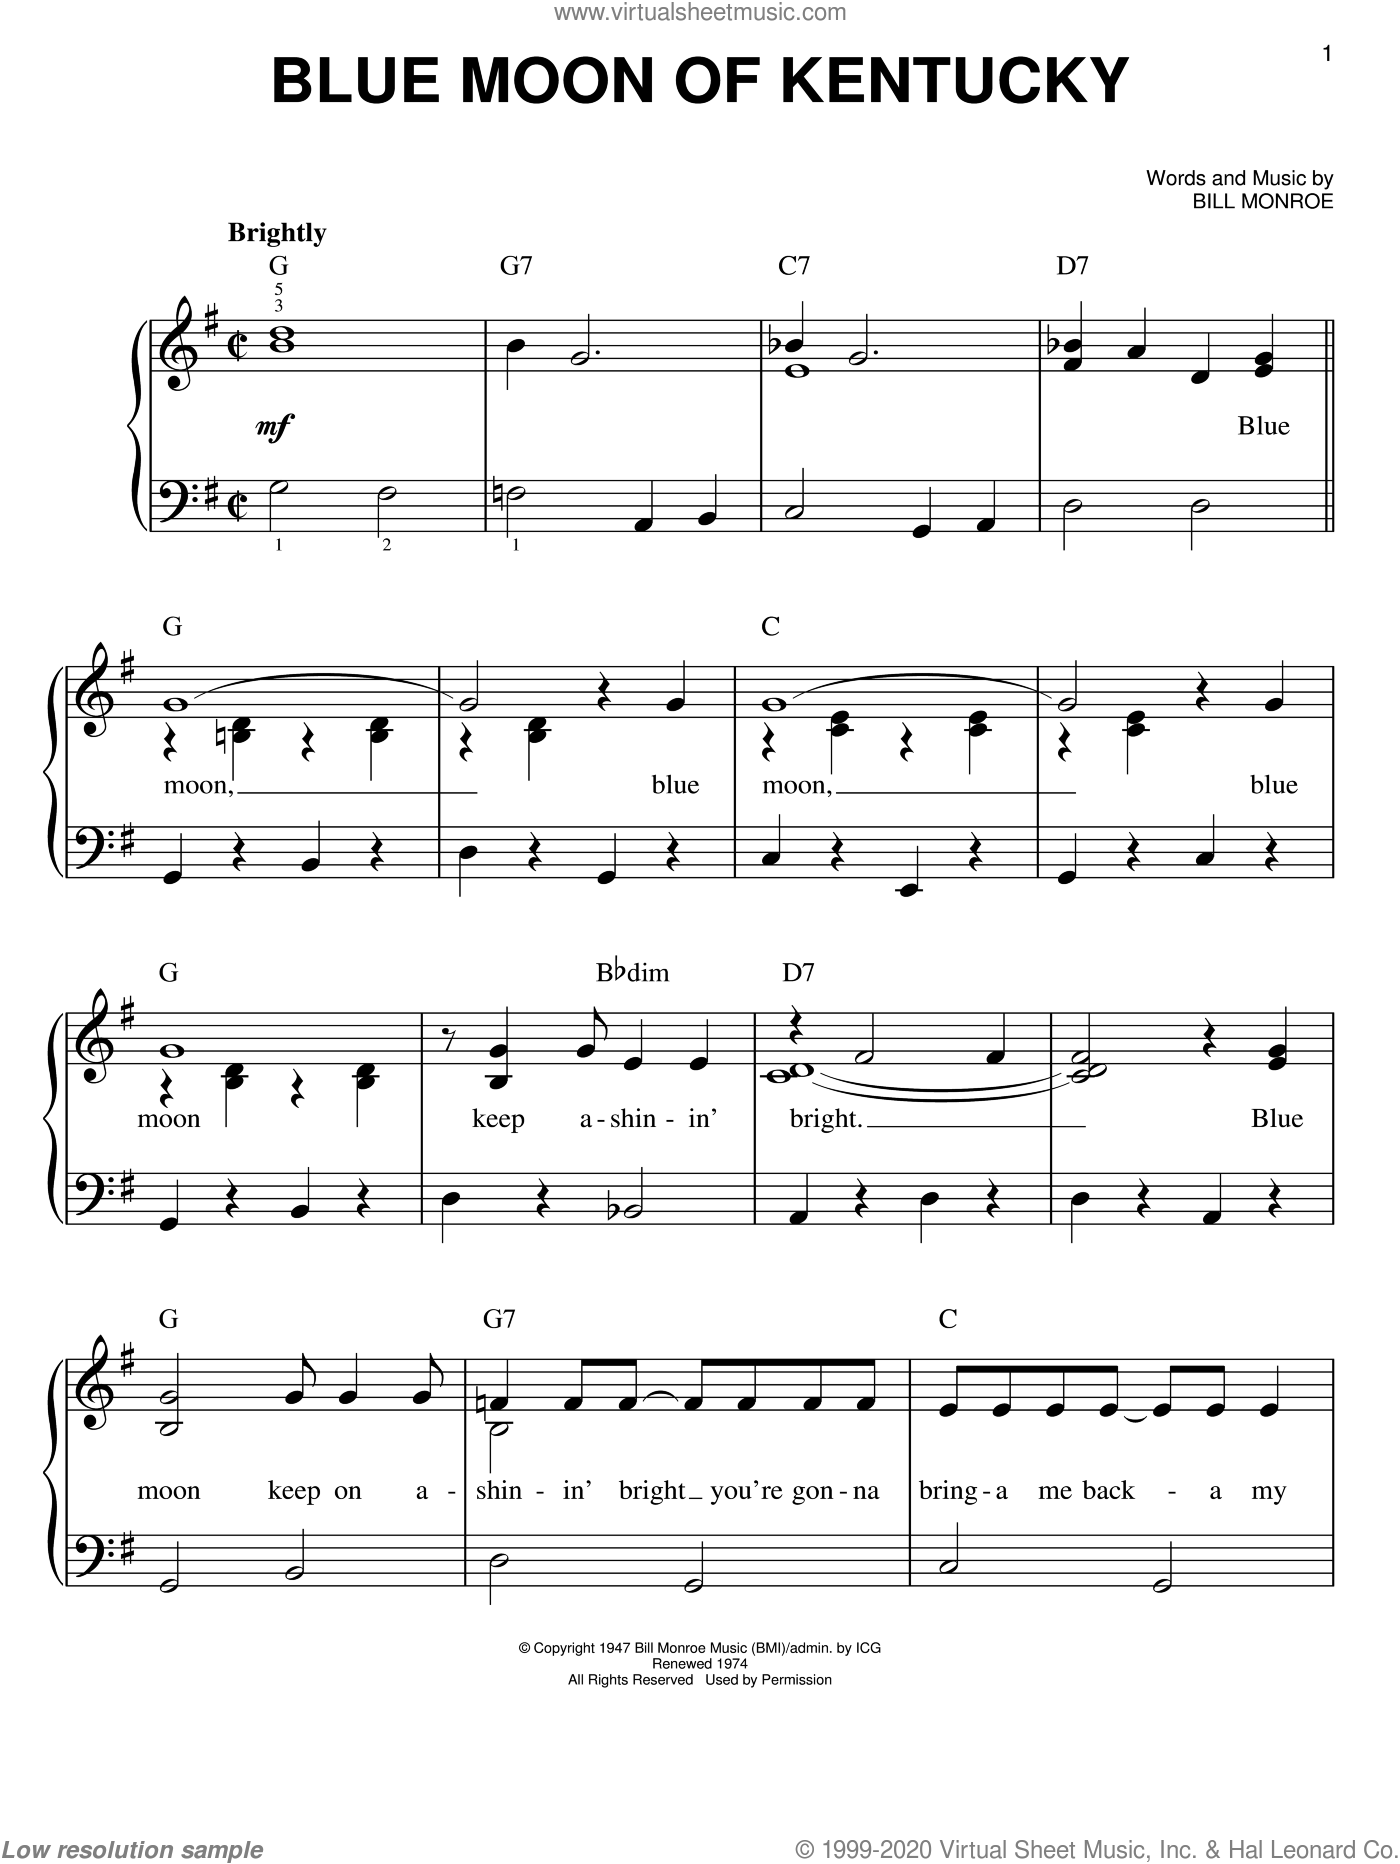 Blue Moon Of Kentucky sheet music for piano solo by Bill Monroe and Elvis Presley, easy skill level